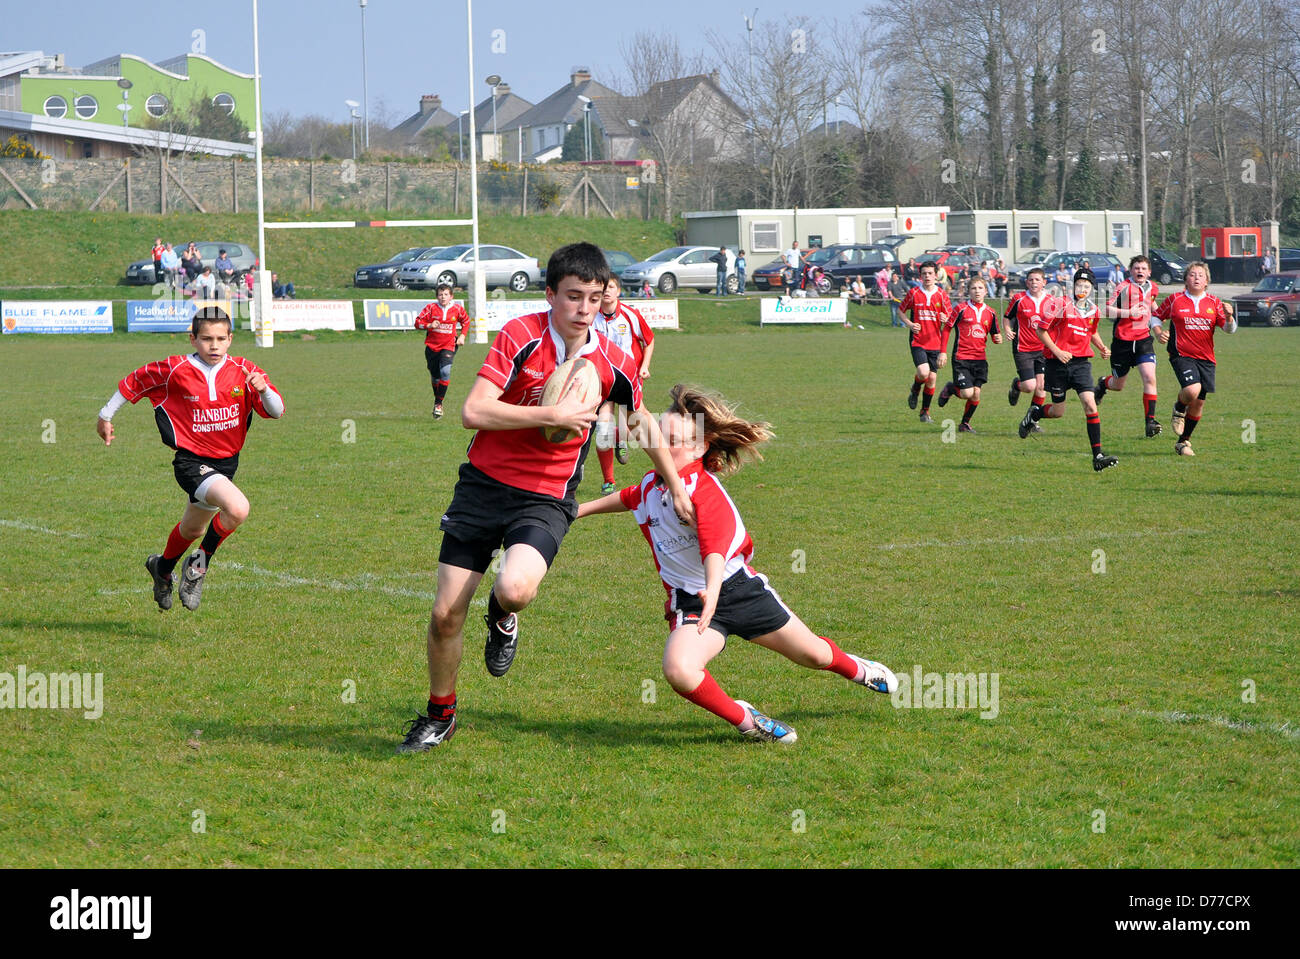 Adolescents à jouer au rugby, Royaume-Uni Photo Stock